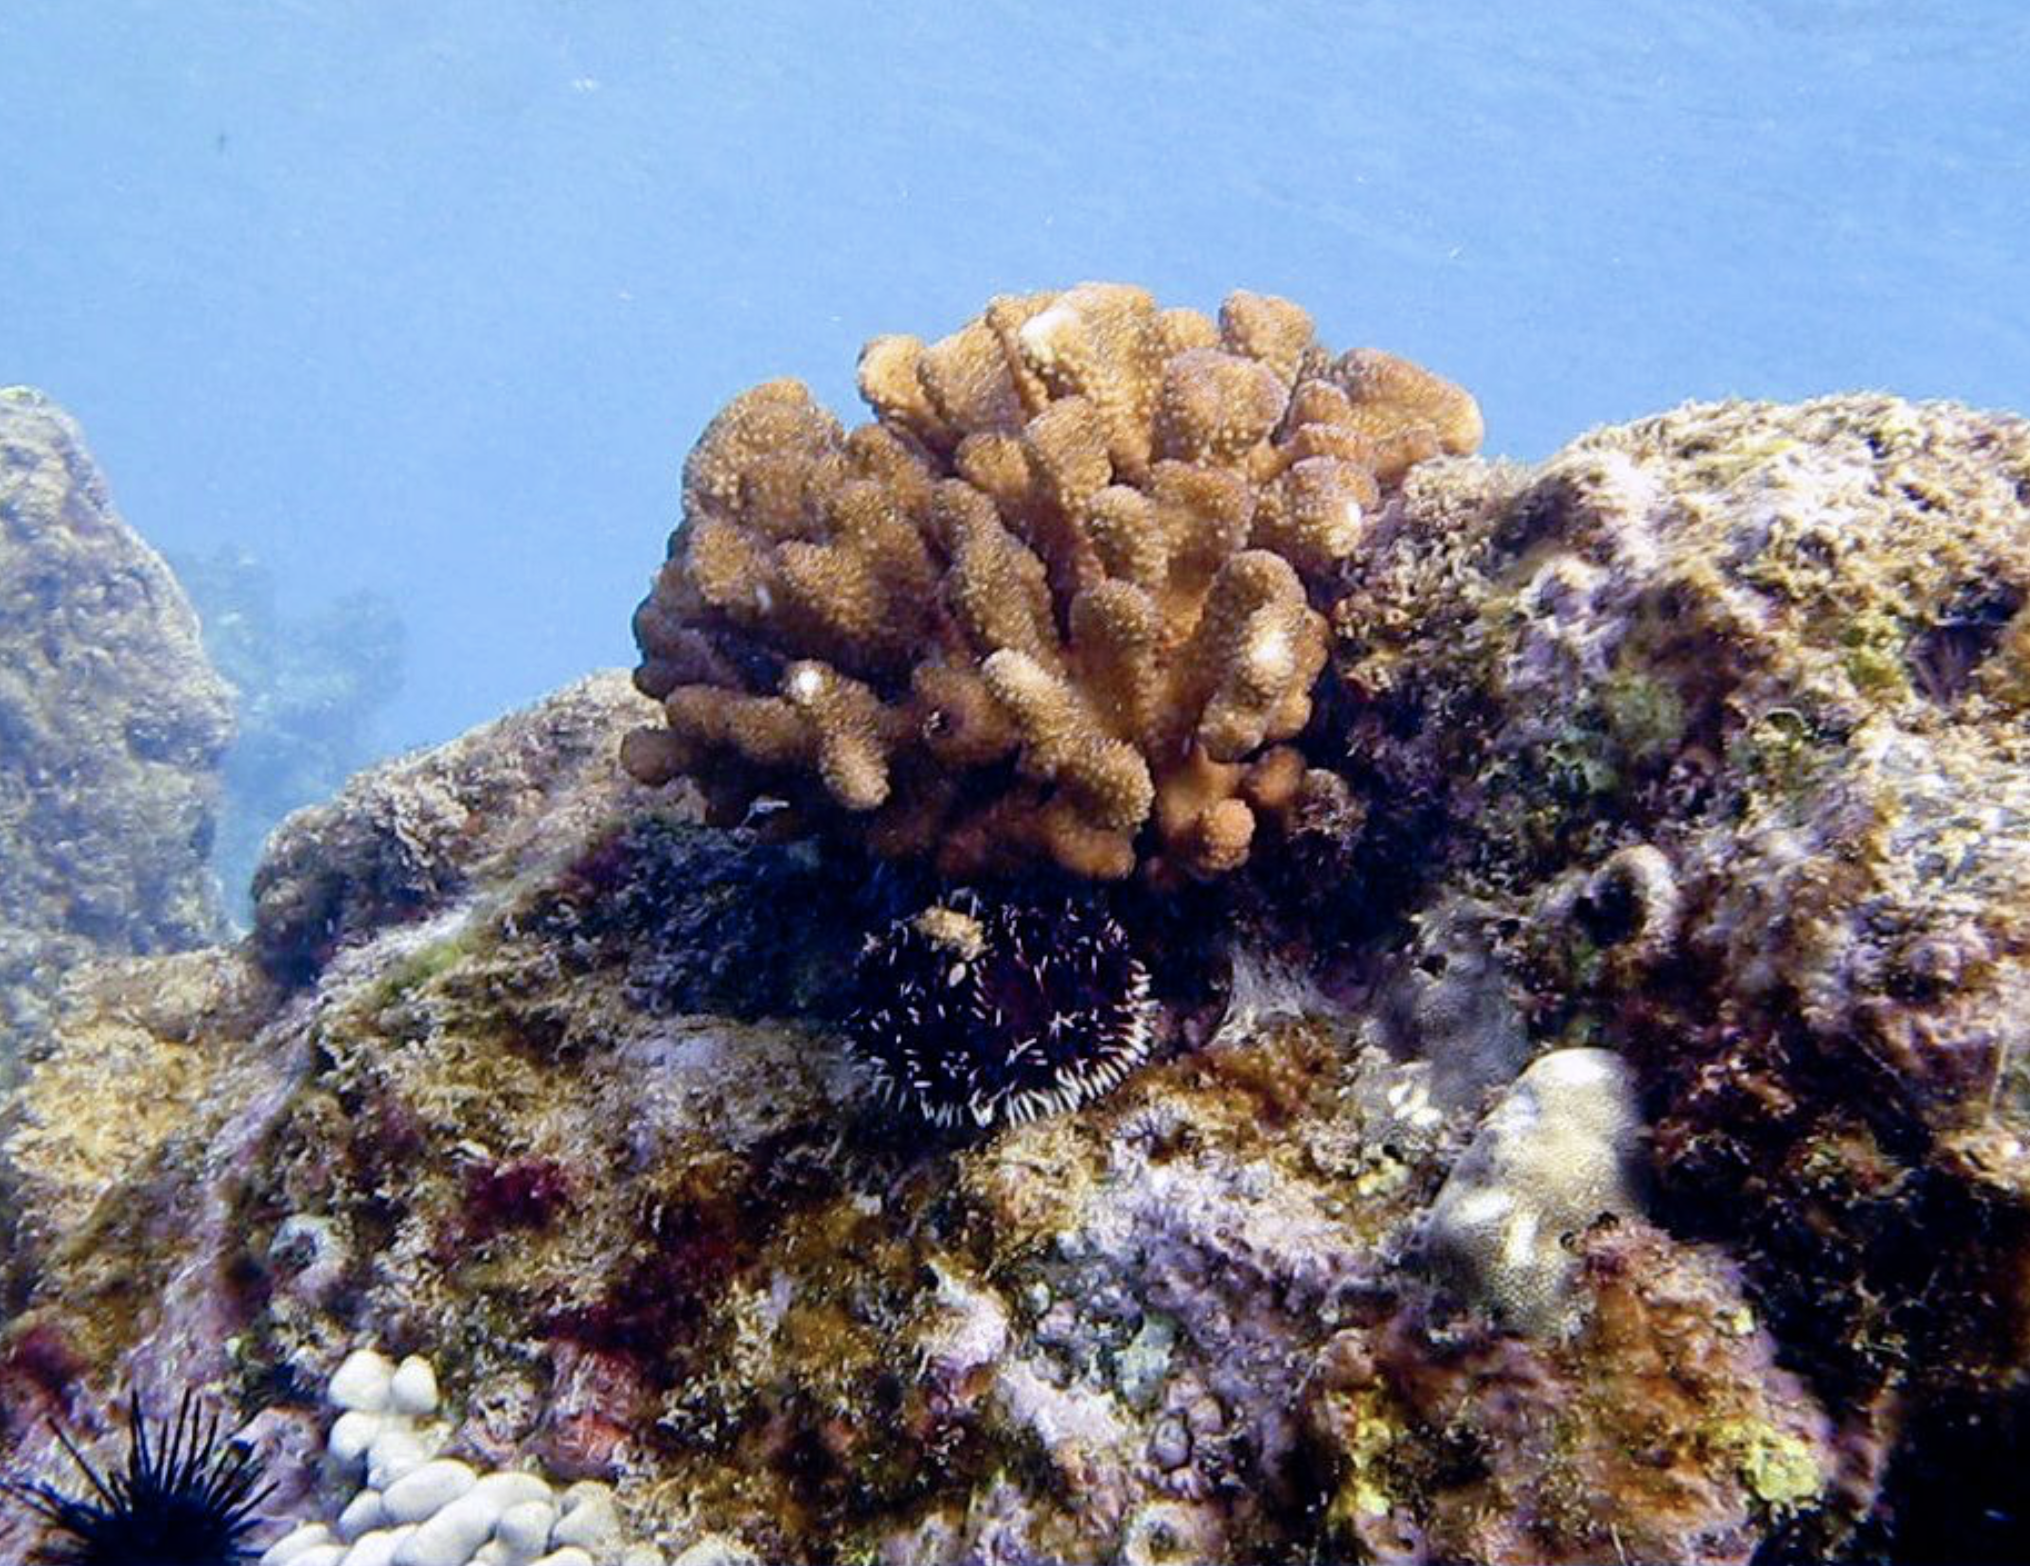 Aquatic Biologists Monitor Coral Spawning During Lunar Cycle and Spring Tides